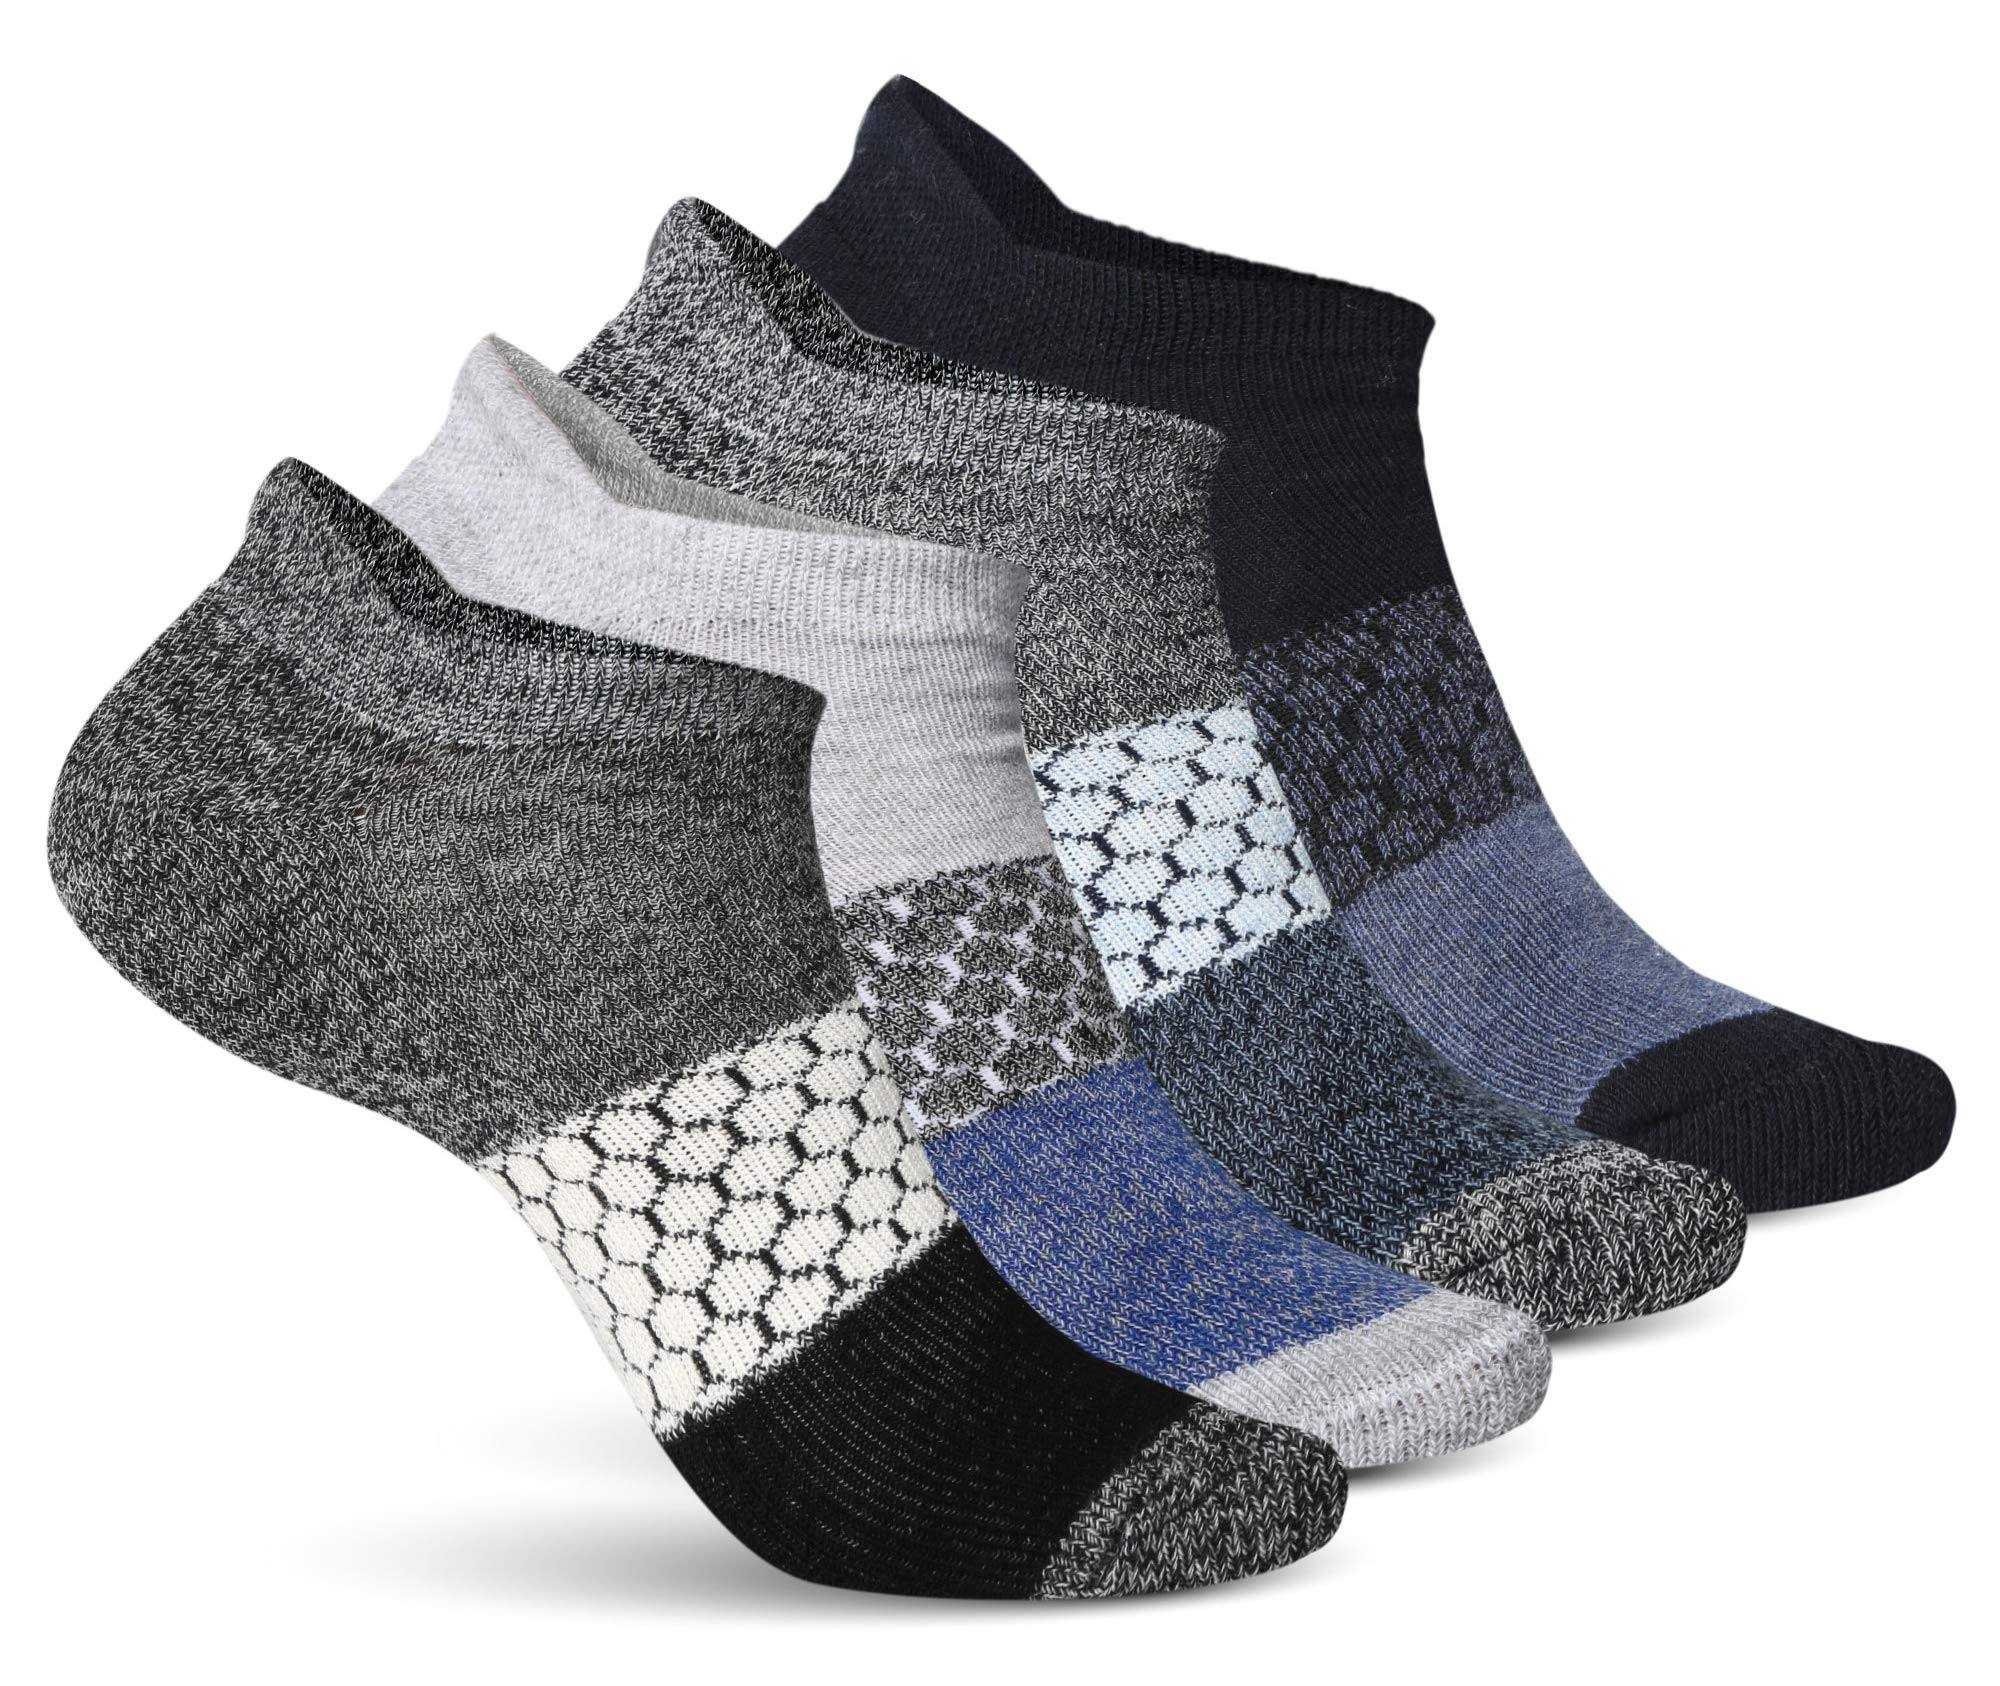 Athletic Socks for Women - Ladies Ankle Socks - No Show Low Cut Cushioned Performance Sports Tab Socks with Arch Support for Running, Hiking, Workout and More - Soft & Comfortable Fit - 4 Pack by Pembrook